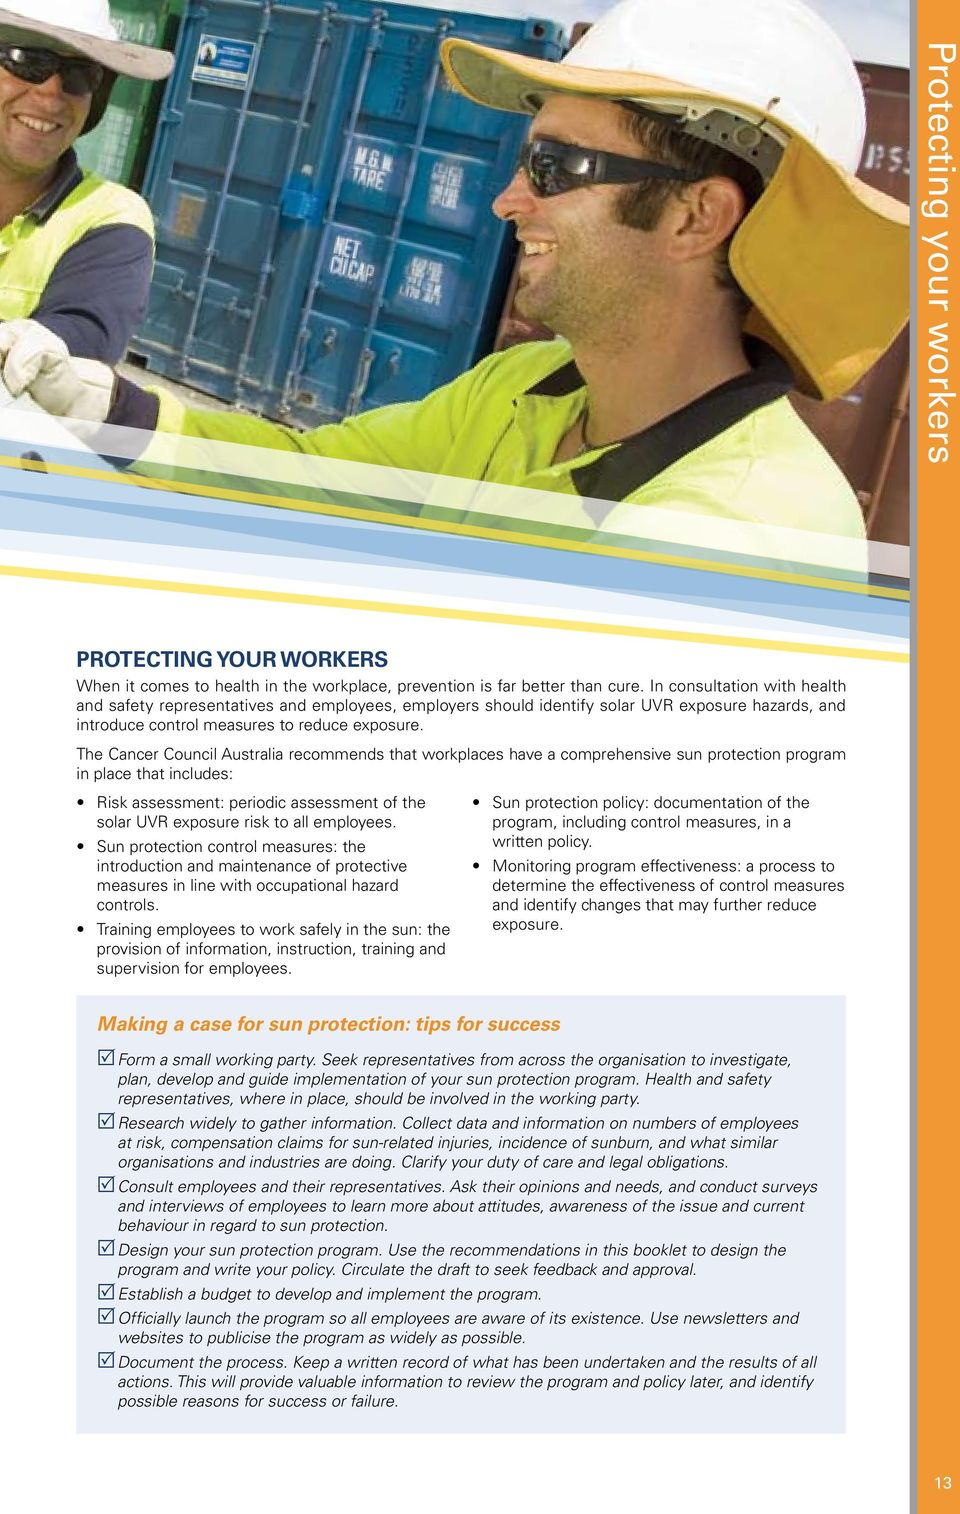 The Cancer Council Australia recommends that workplaces have a comprehensive sun protection program in place that includes: isk assessment: periodic assessment of the solar UV exposure risk to all